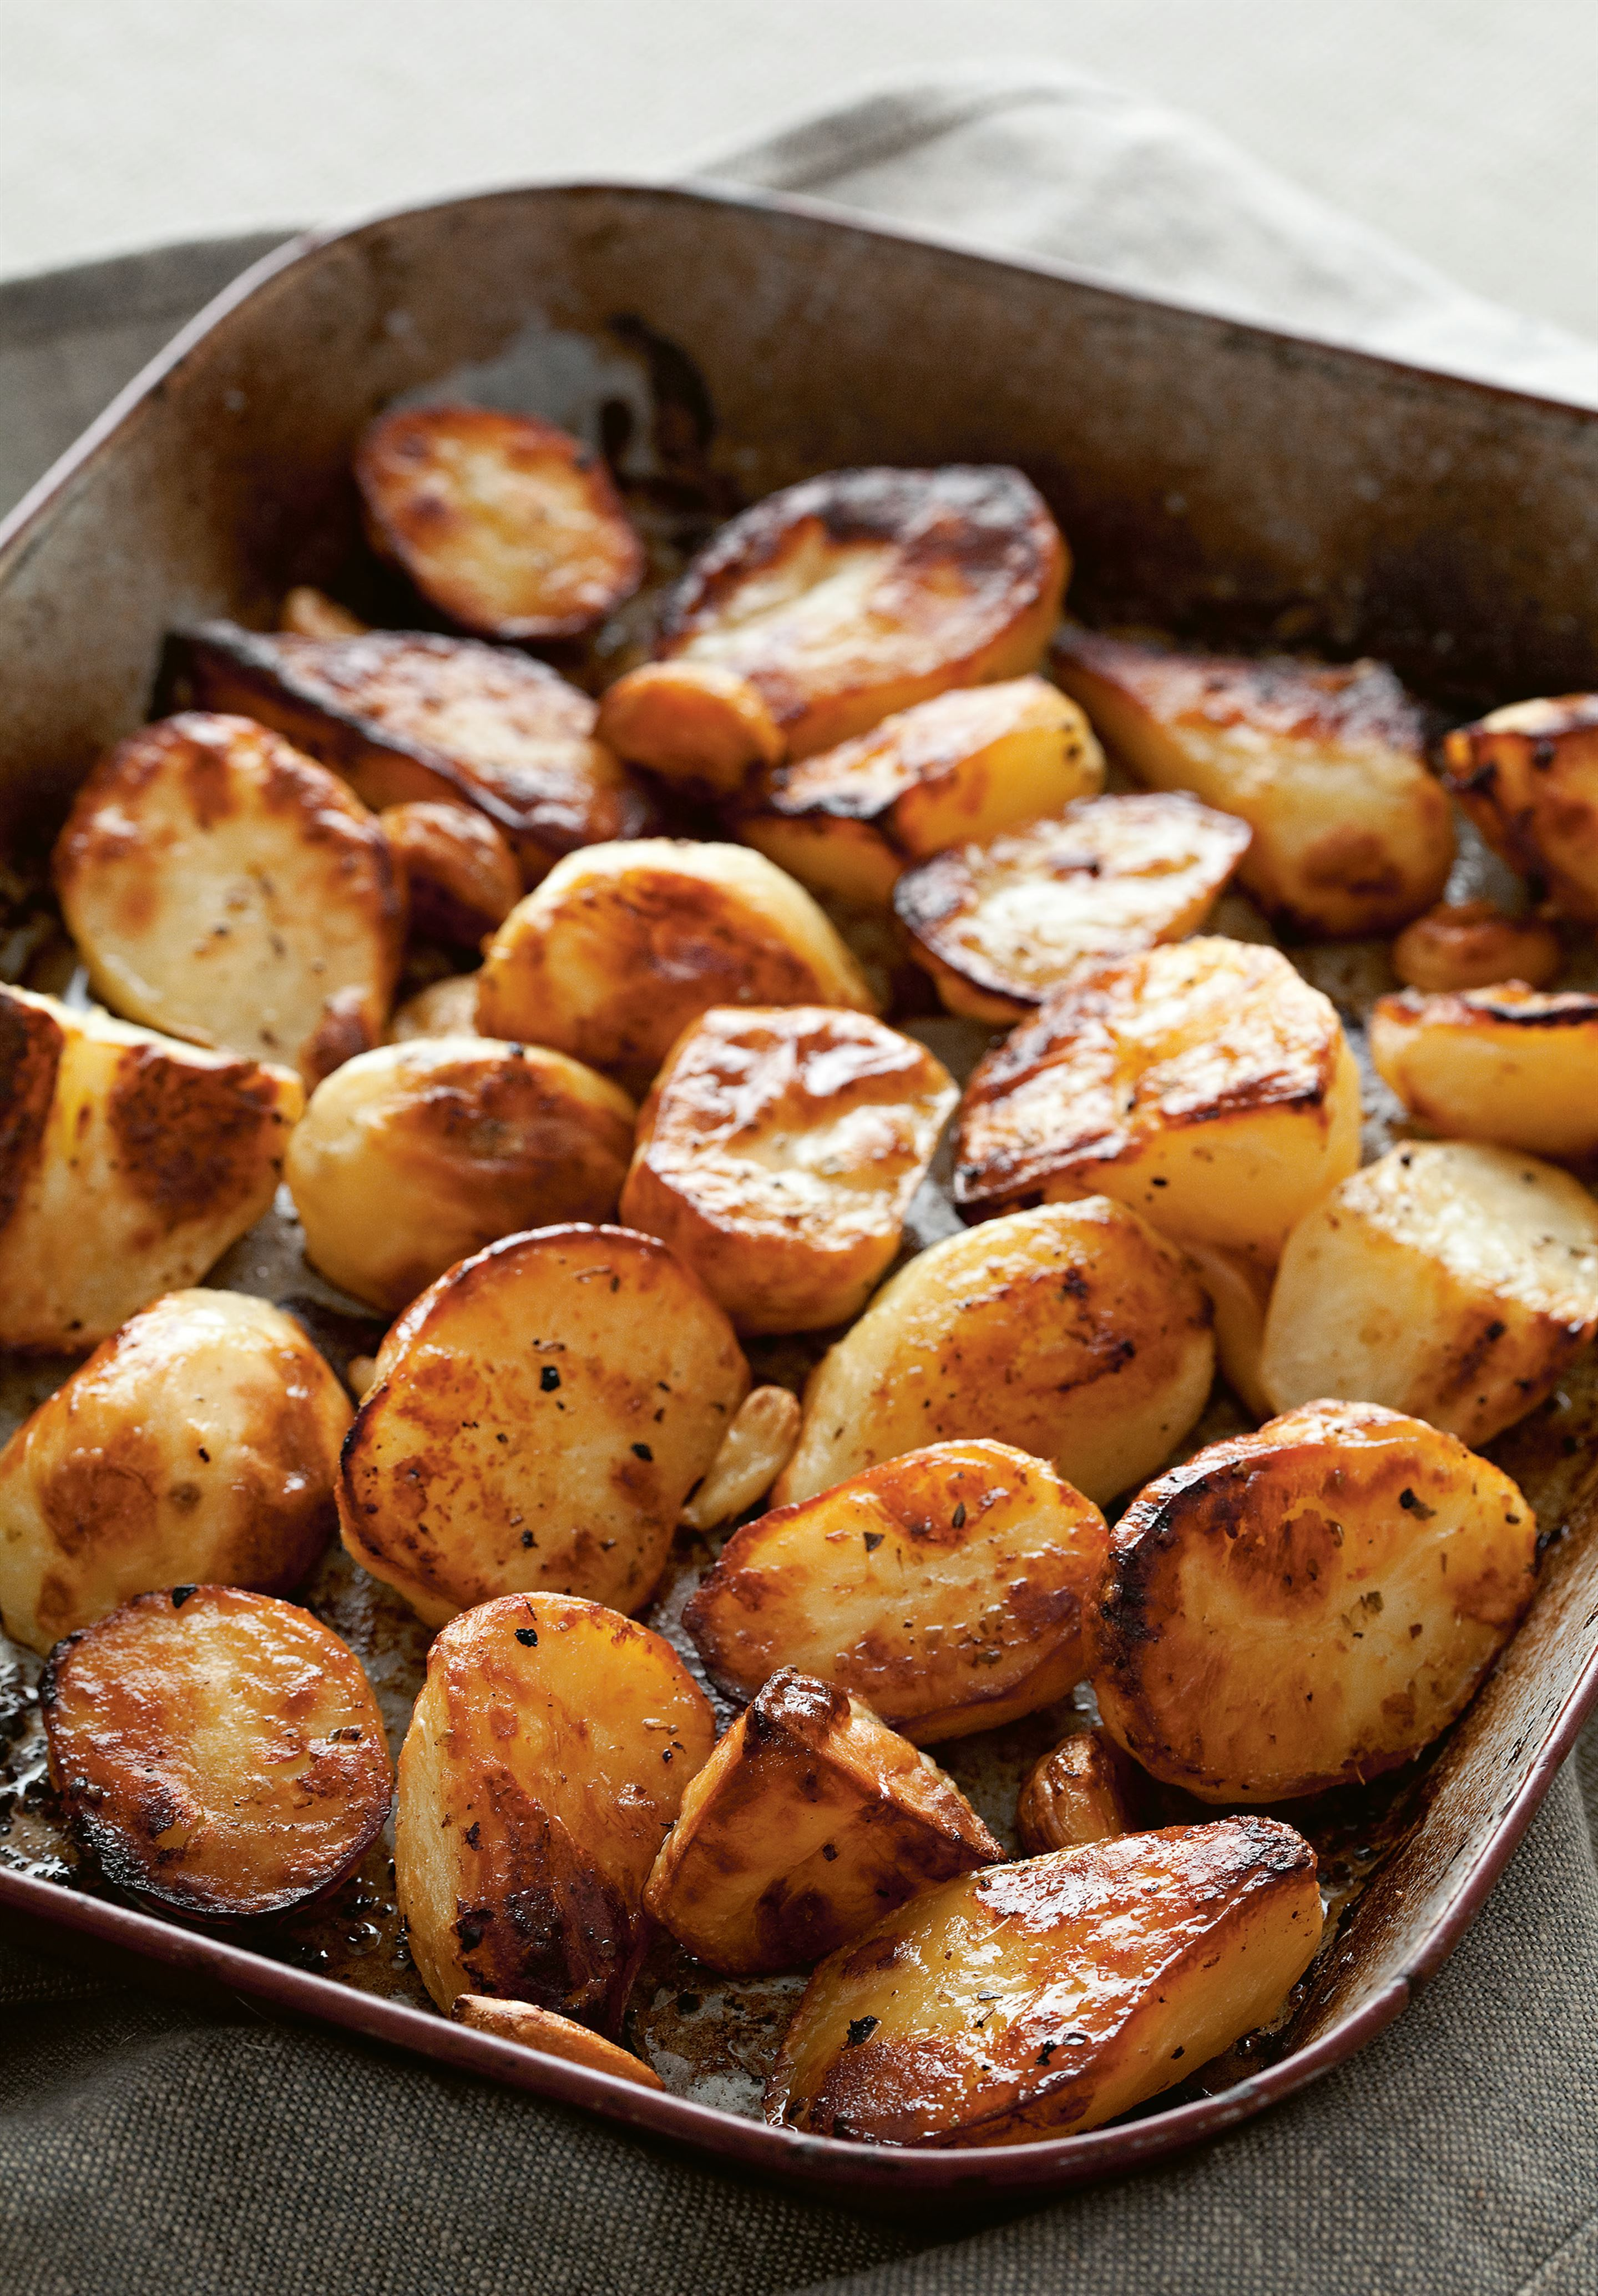 Lemon, garlic & herb roasted potatoes